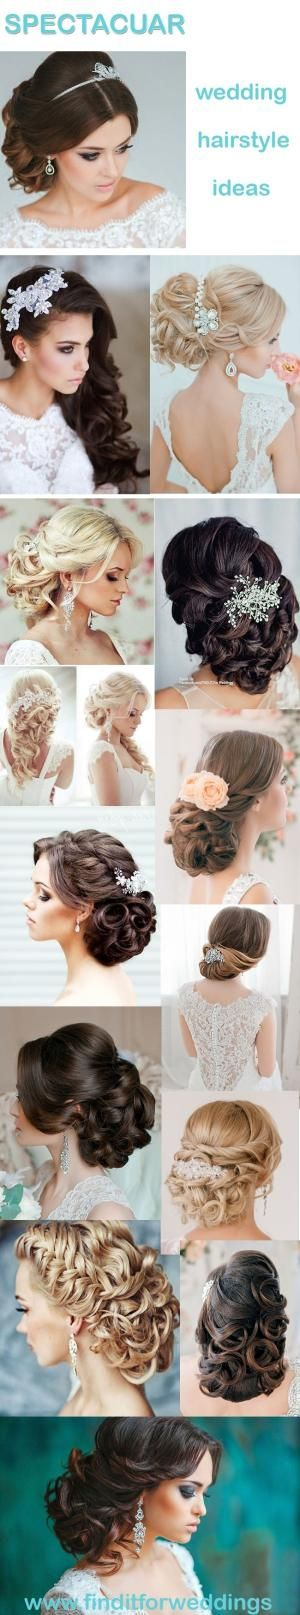 Popular wedding hairstyles that will make you feel like a Princess.For more fashion and wedding inspiration visit www.finditforweddings.com Wedding updos by healthgirl